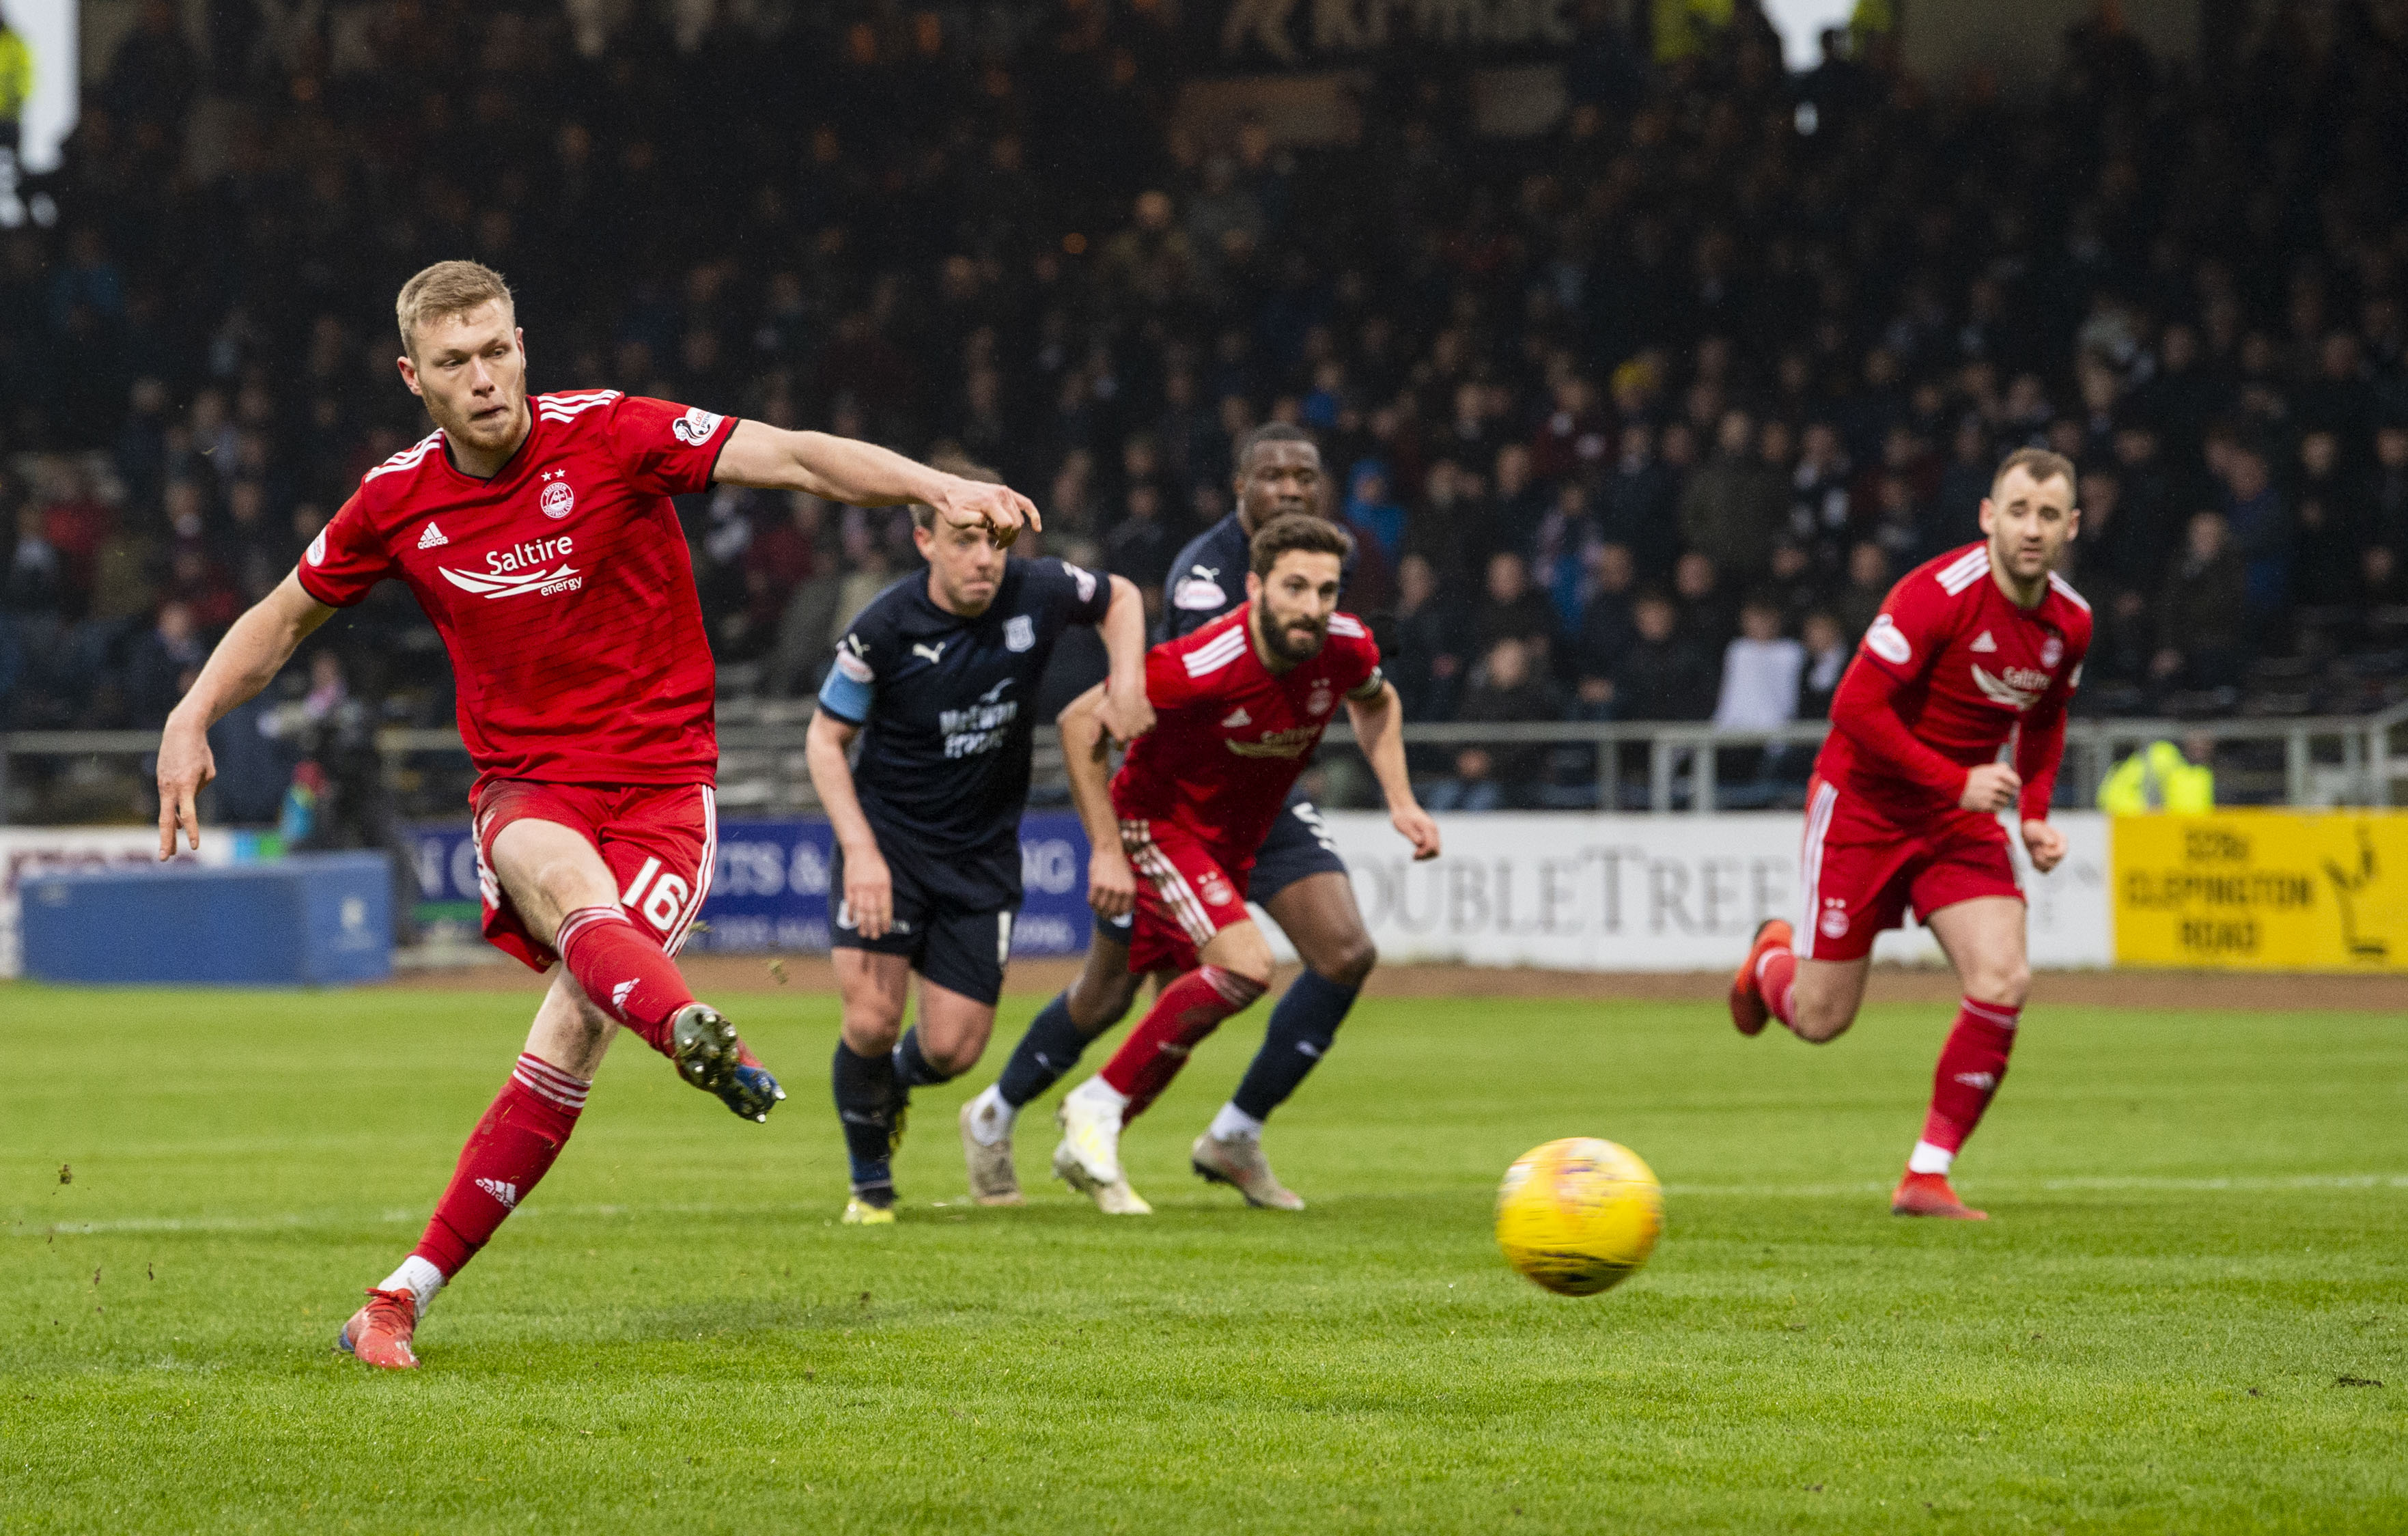 Aberdeen's Sam Cosgrove scores from the spot.